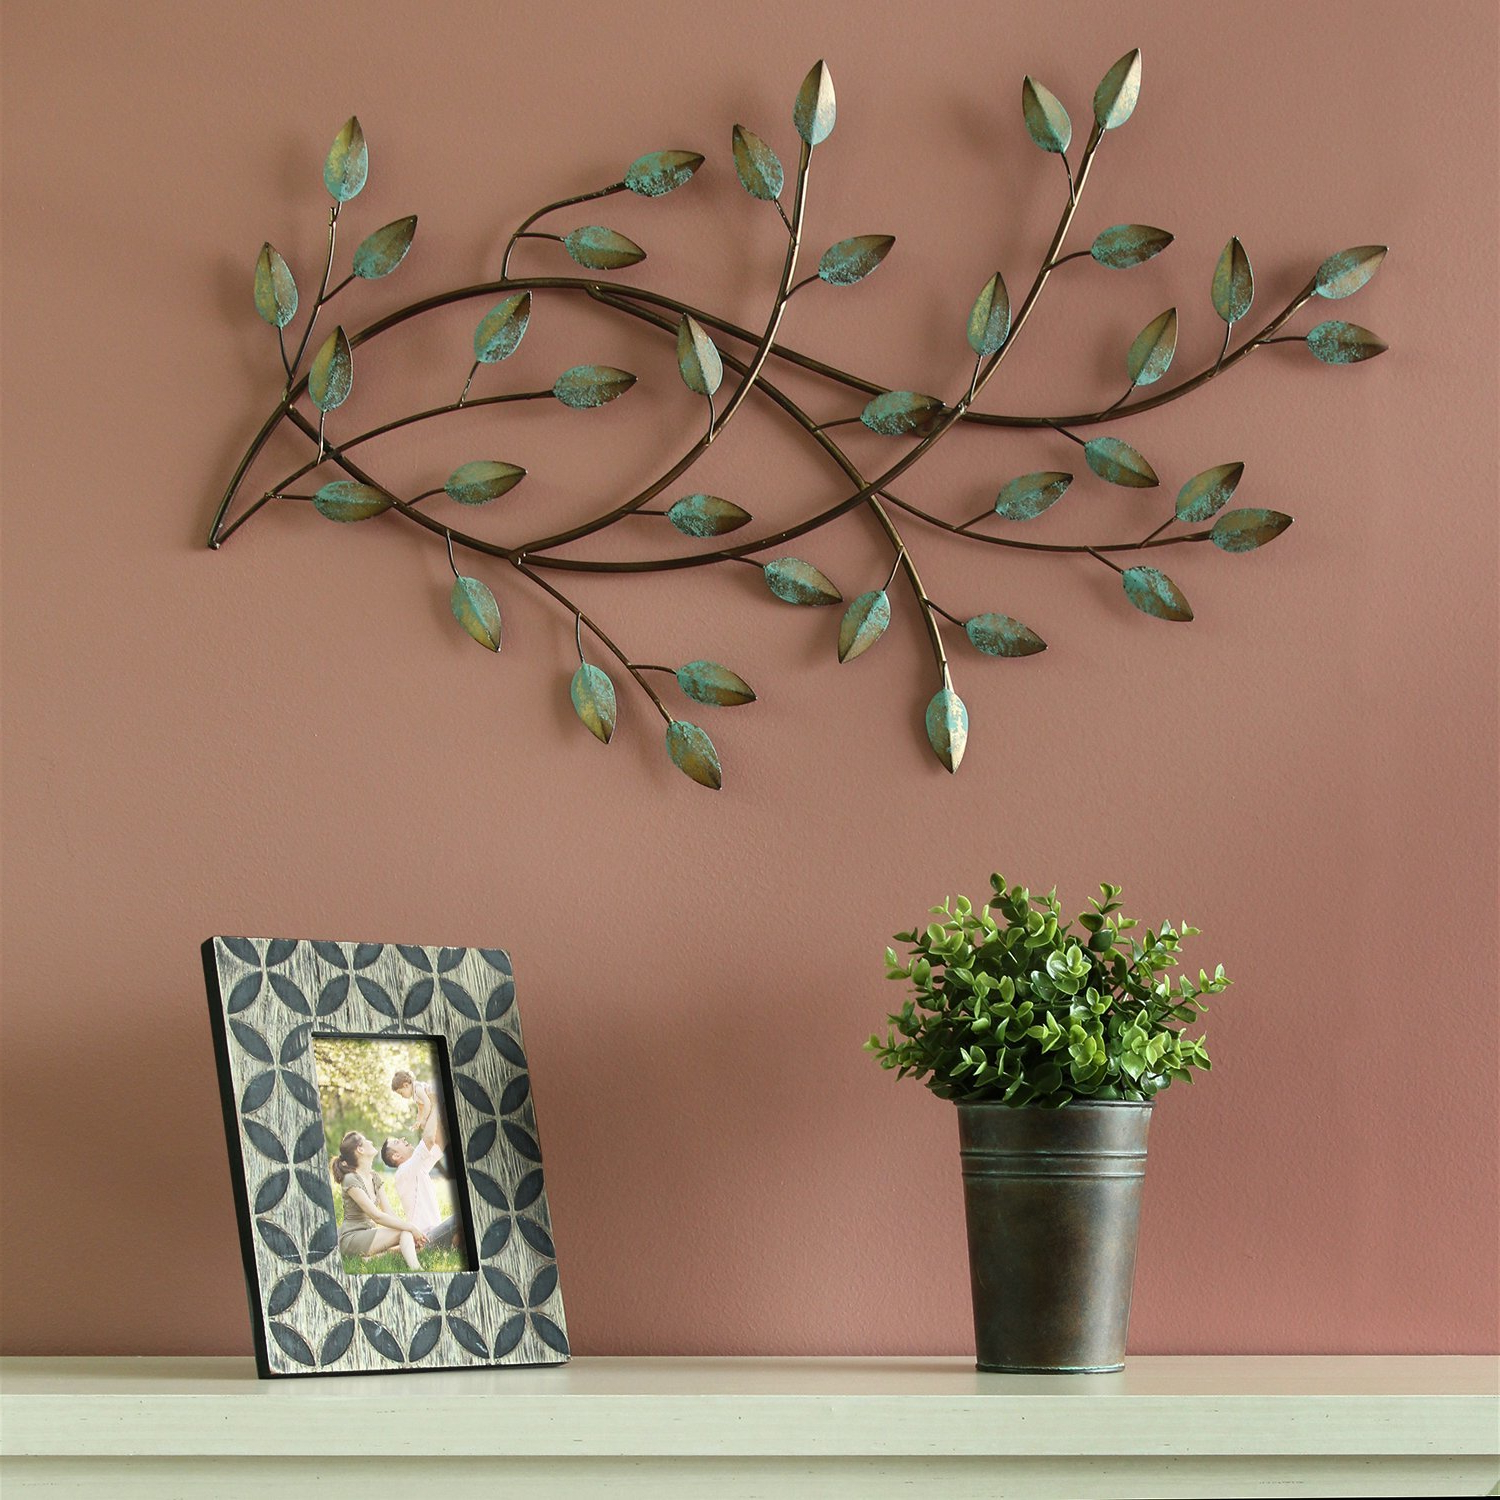 Wayfair Intended For Most Up To Date Leaves Metal Sculpture Wall Decor By Winston Porter (View 18 of 20)